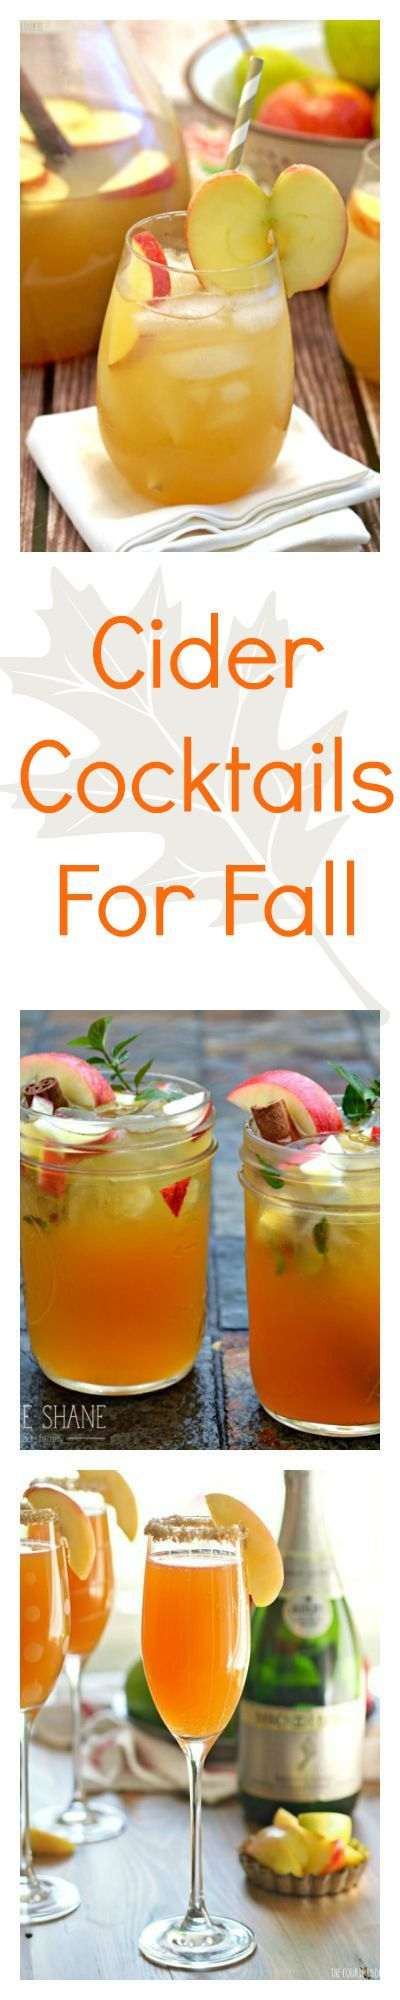 Apple cider is good, but you'll love these takes on the fall classic that turn your favorite drink into party ready cocktails. These drink recipes are perfect for autumn!